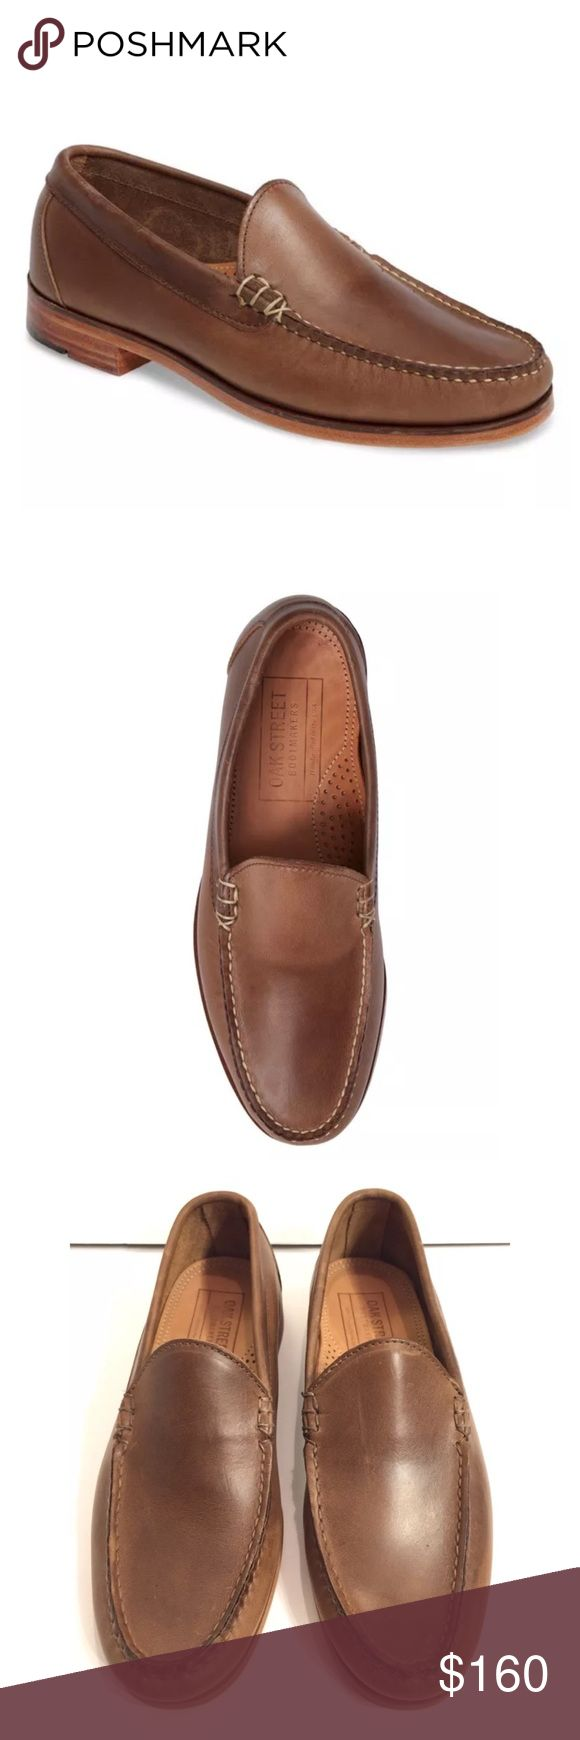 Oak Street Bootmakers Men's Shoes Natural Loafer Oak Street Bootmakers Men's Shoes Natural Loafer (Men) 10 D  Leather upper, lining and sole. By Oak Street Bootmakers; made in the USA. Men's Shoes. Rich leather construction defines a classic American-made loafer marked with meticulous stitching.  Excellent Condition, Celebrity Favorite! A must have style. Please Check All Pictures, I will be more than happy to answer any Questions. Unfortunately No Box or Dustbag. Oak Street Bootmakers Shoes…